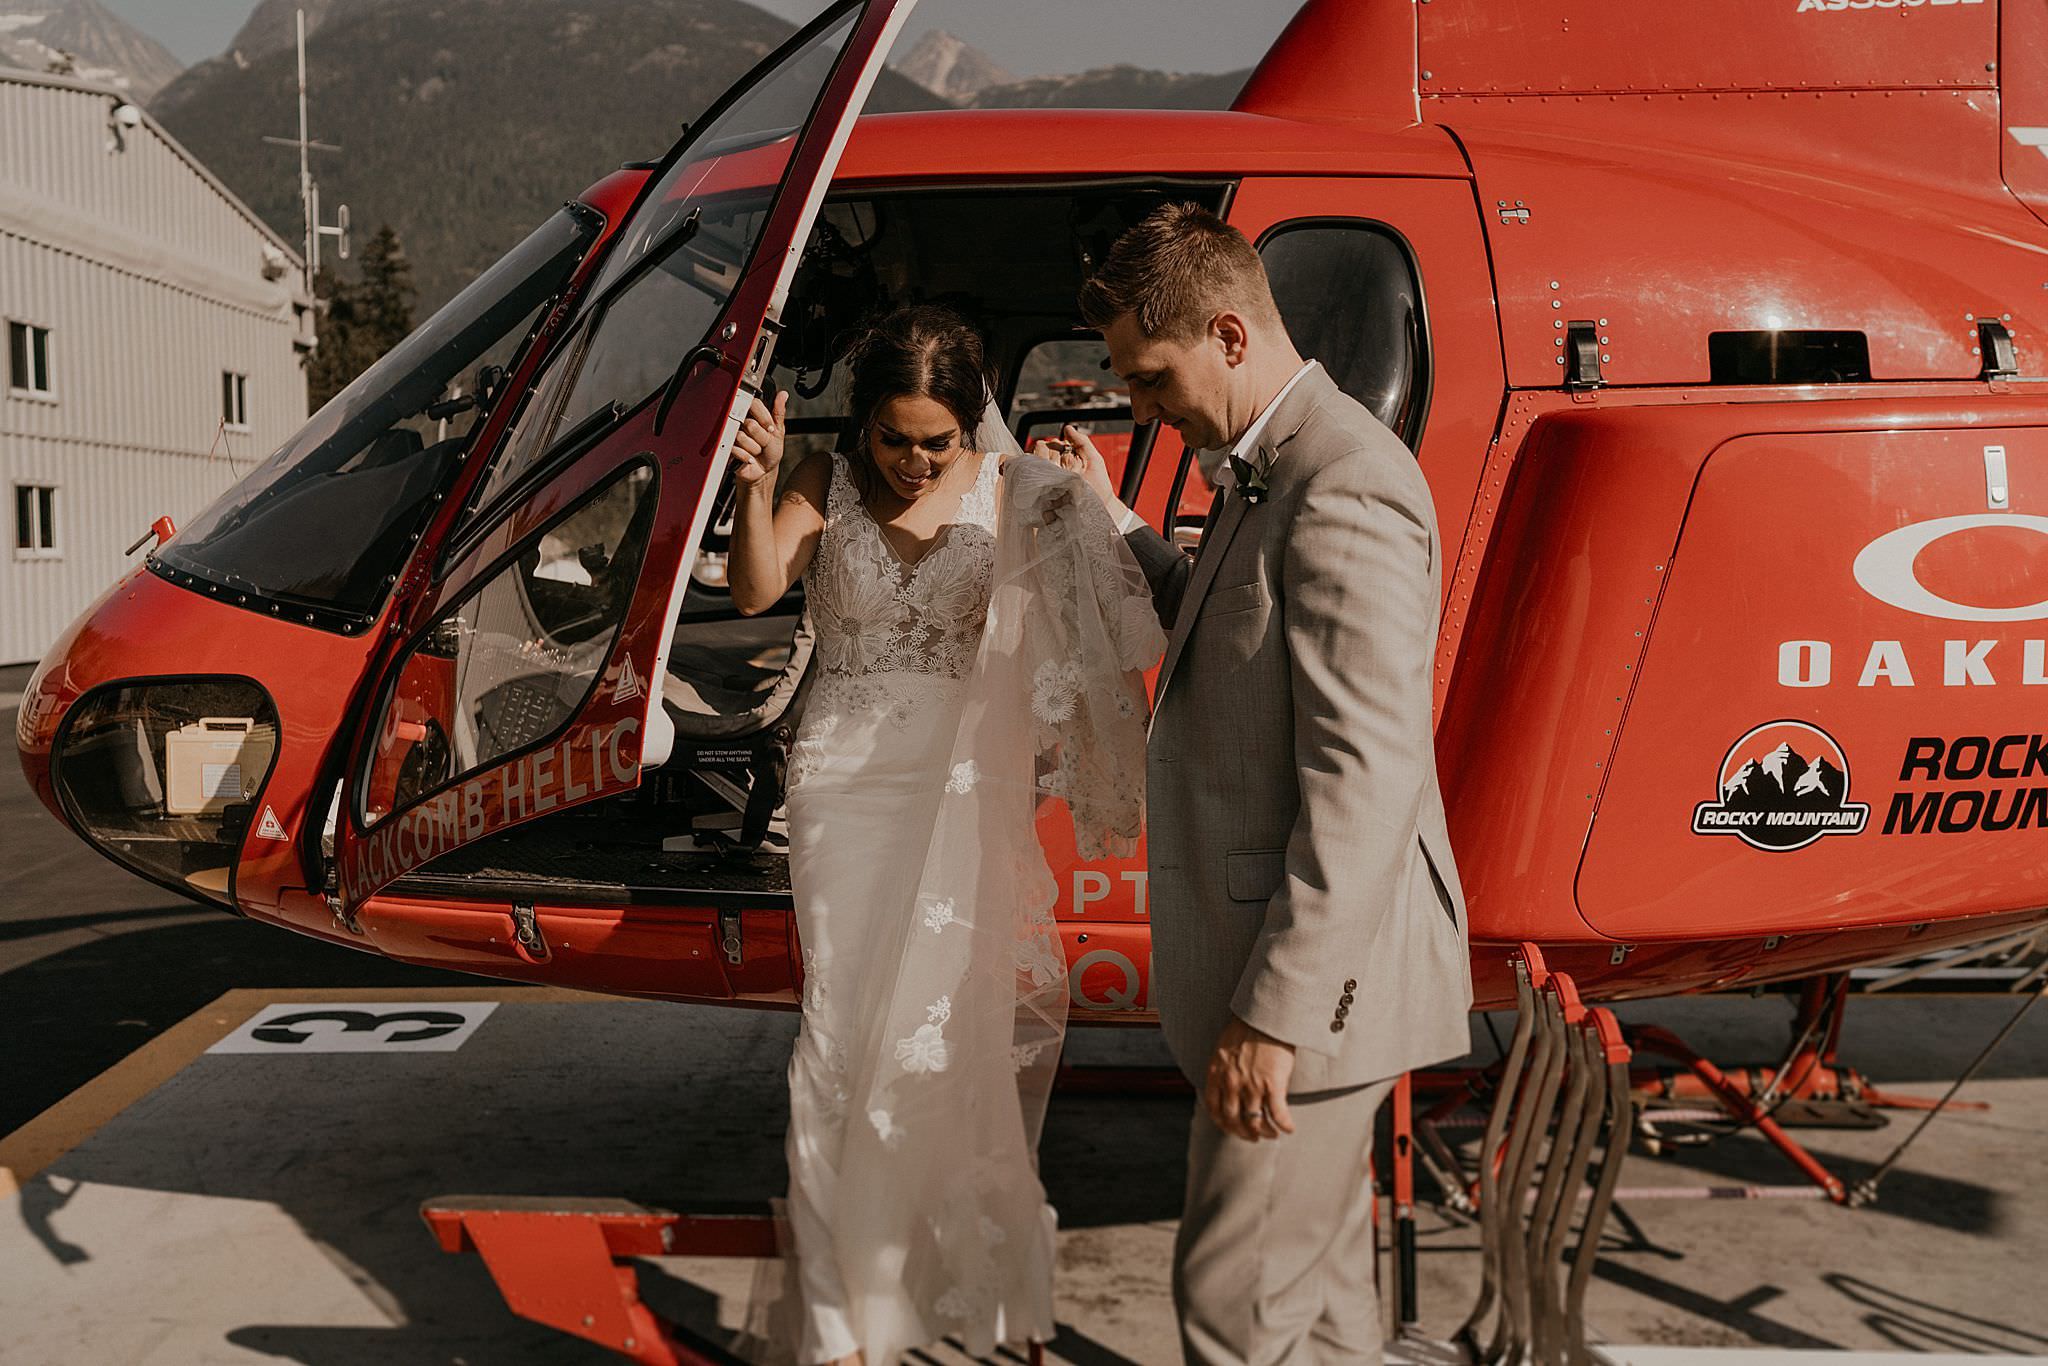 whistler-mountain-helicopter-elopement-wedding_0117.jpg